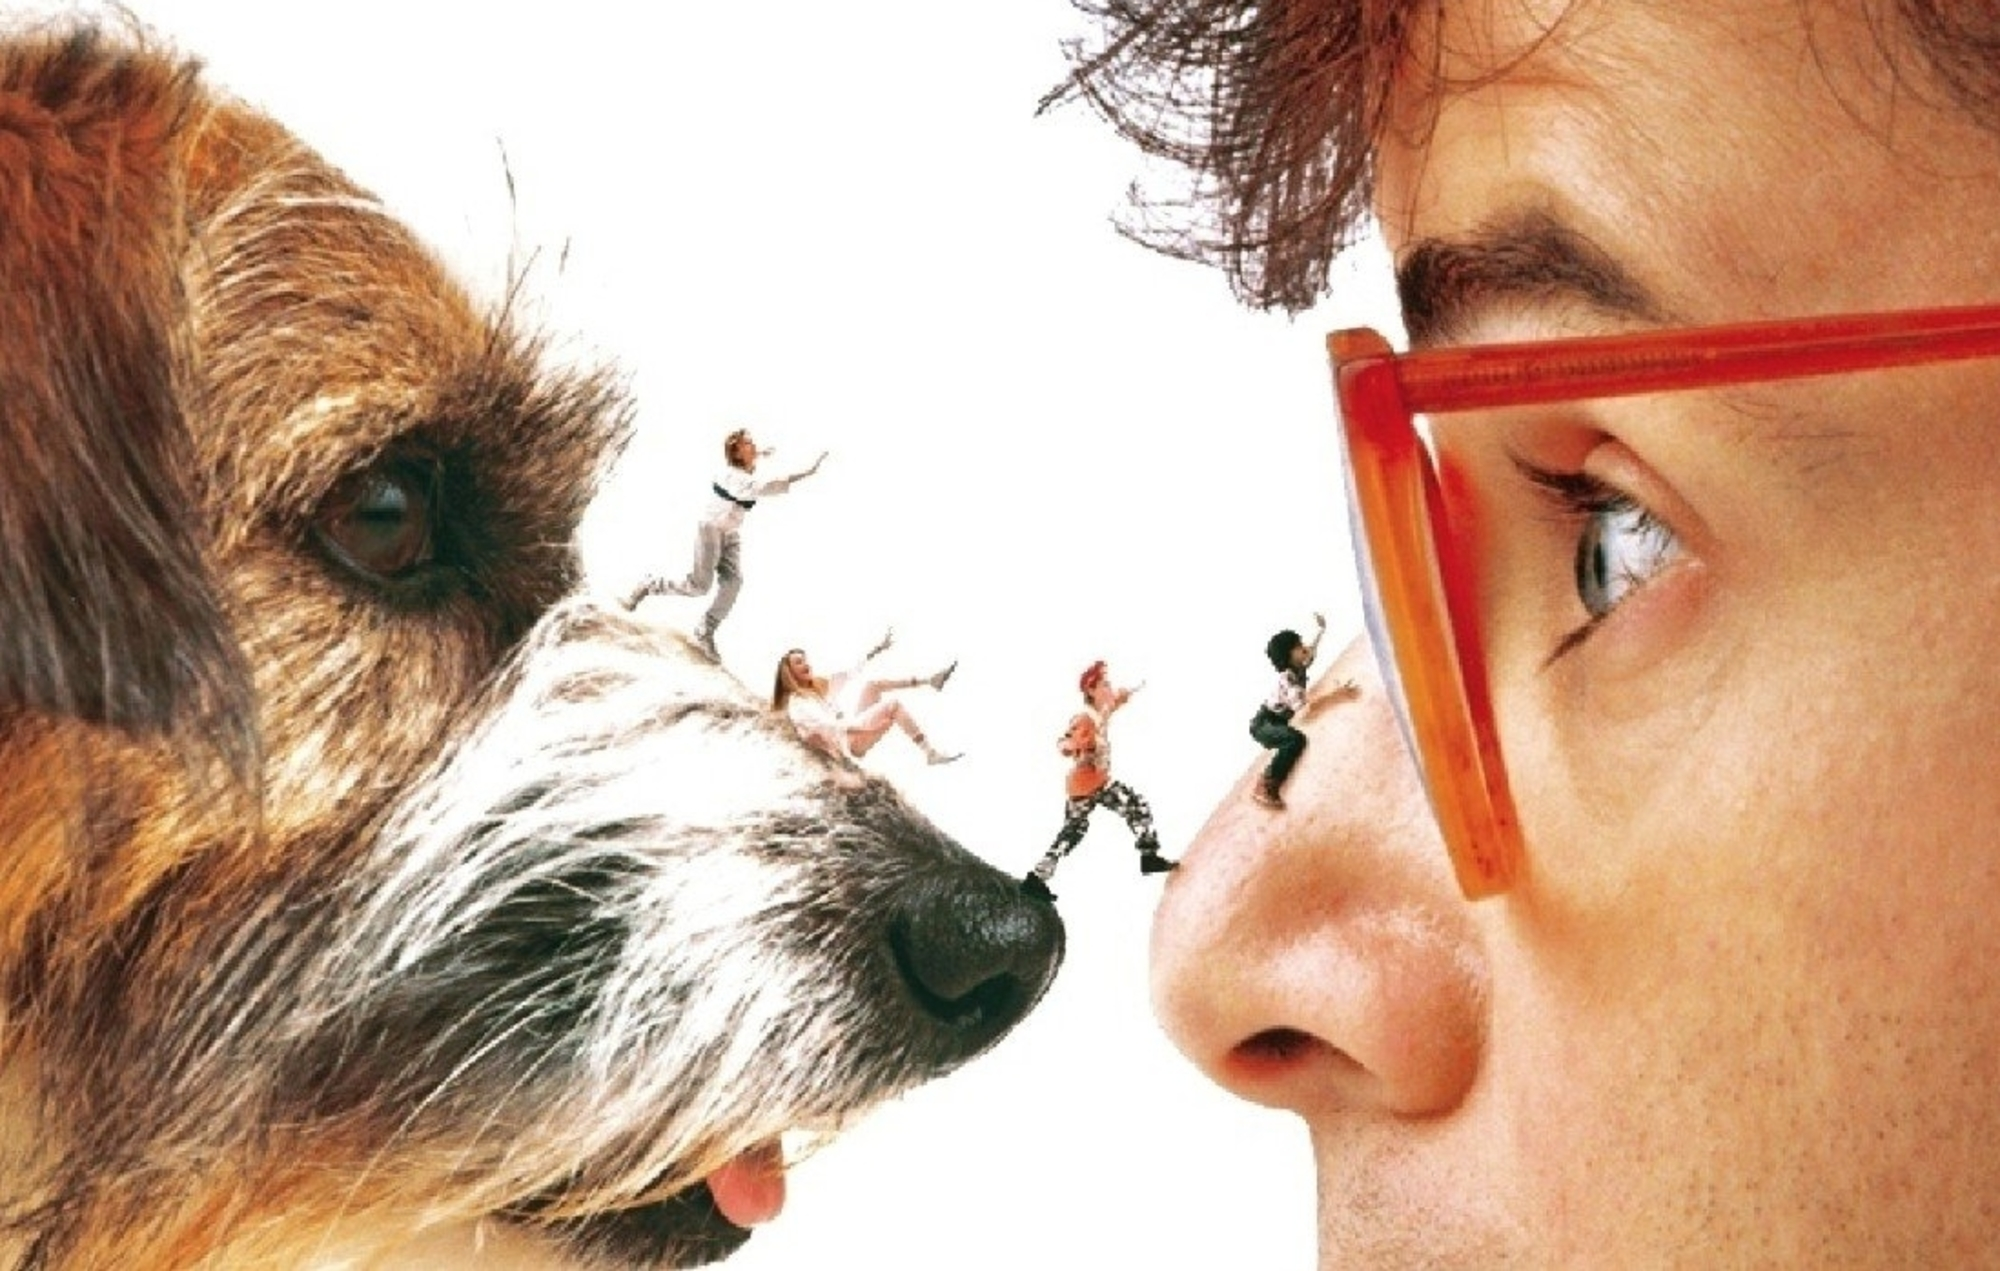 Disney In Talks With Original Honey I Shrunk The Kids Director For Upcoming Reboot